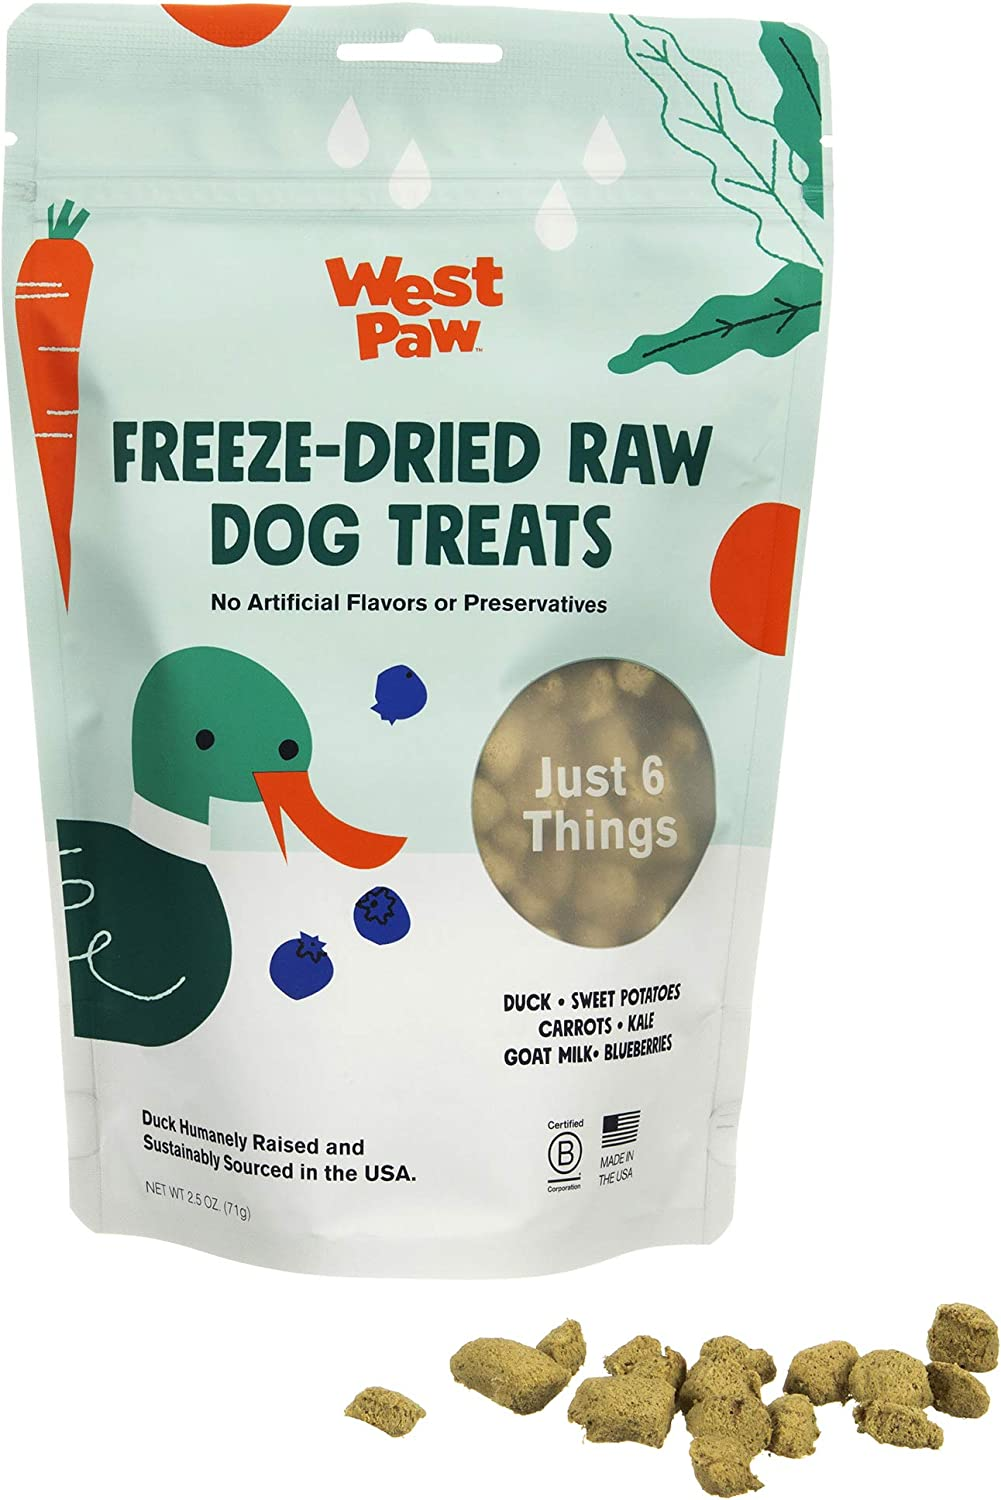 West Paw Freeze-Dried Raw All Natural Dog Treats, Humanely Raised and Sustainably Sourced, Made in USA